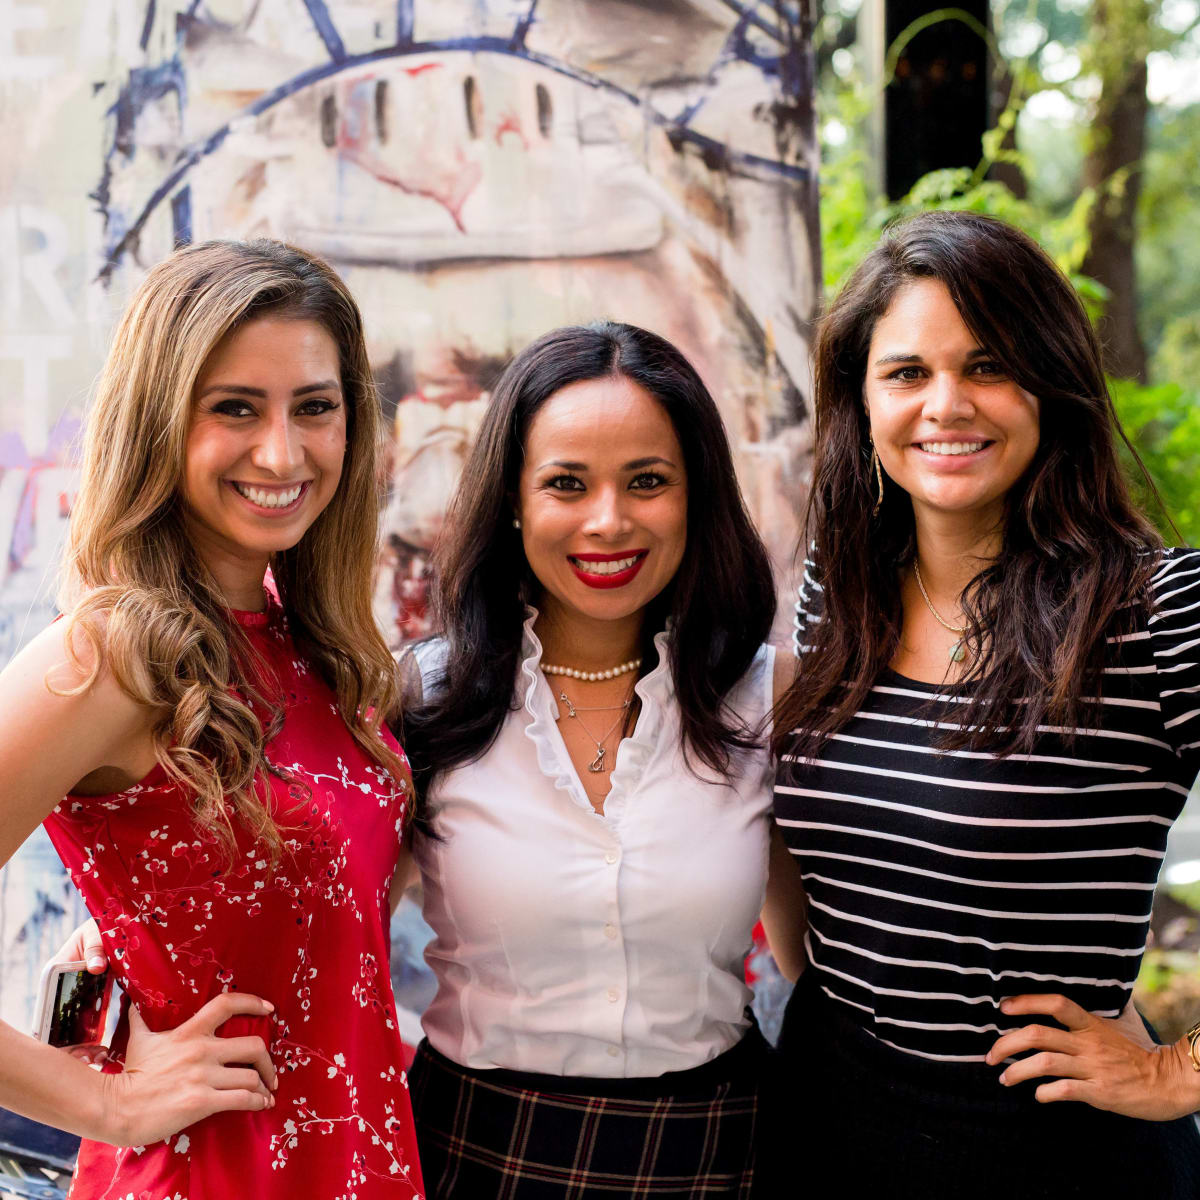 Houston, SportsMap launch party, October 2017,  Myndi Luevano, Claudia Soileau, Nelly Gonzalez